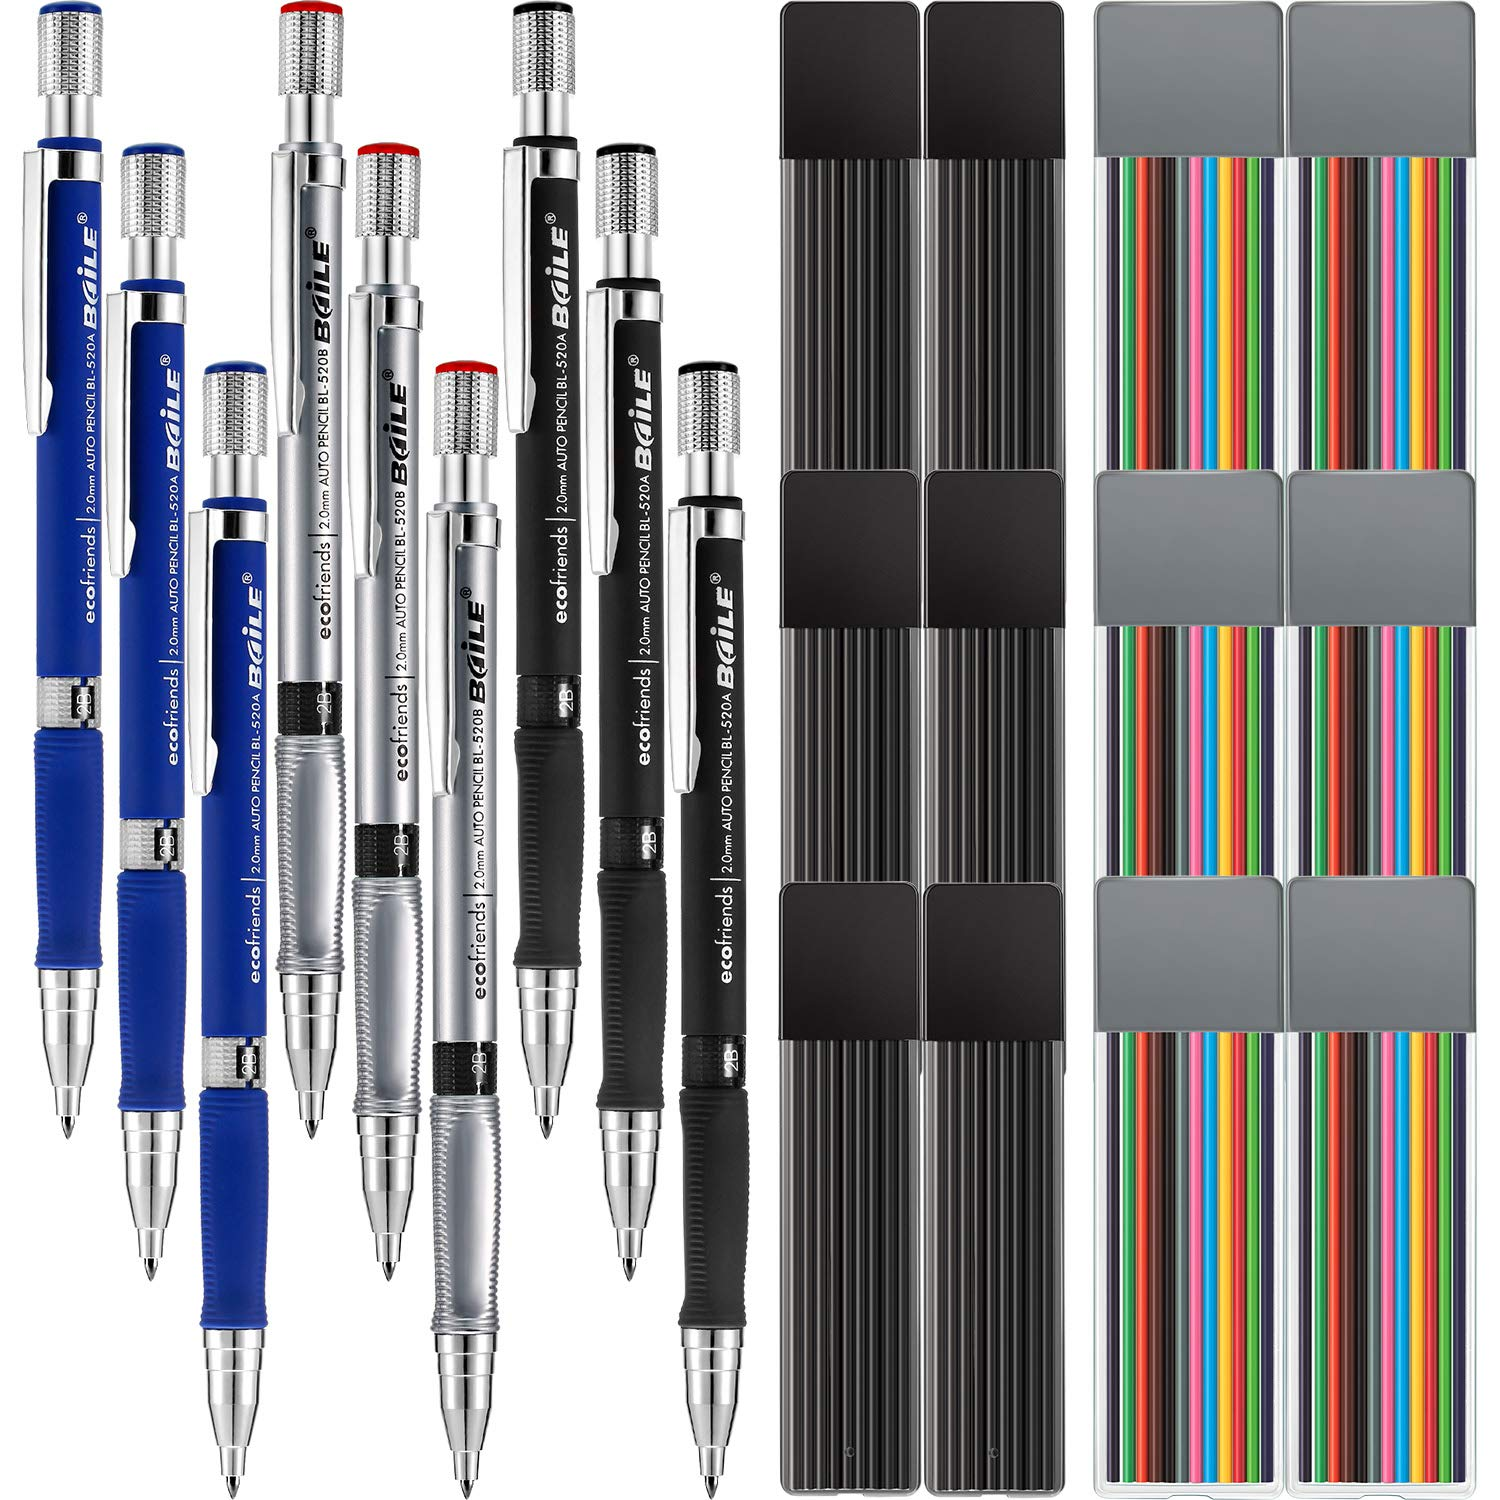 Jovitec 21 Pieces 2.0 mm Mechanical Pencil Set